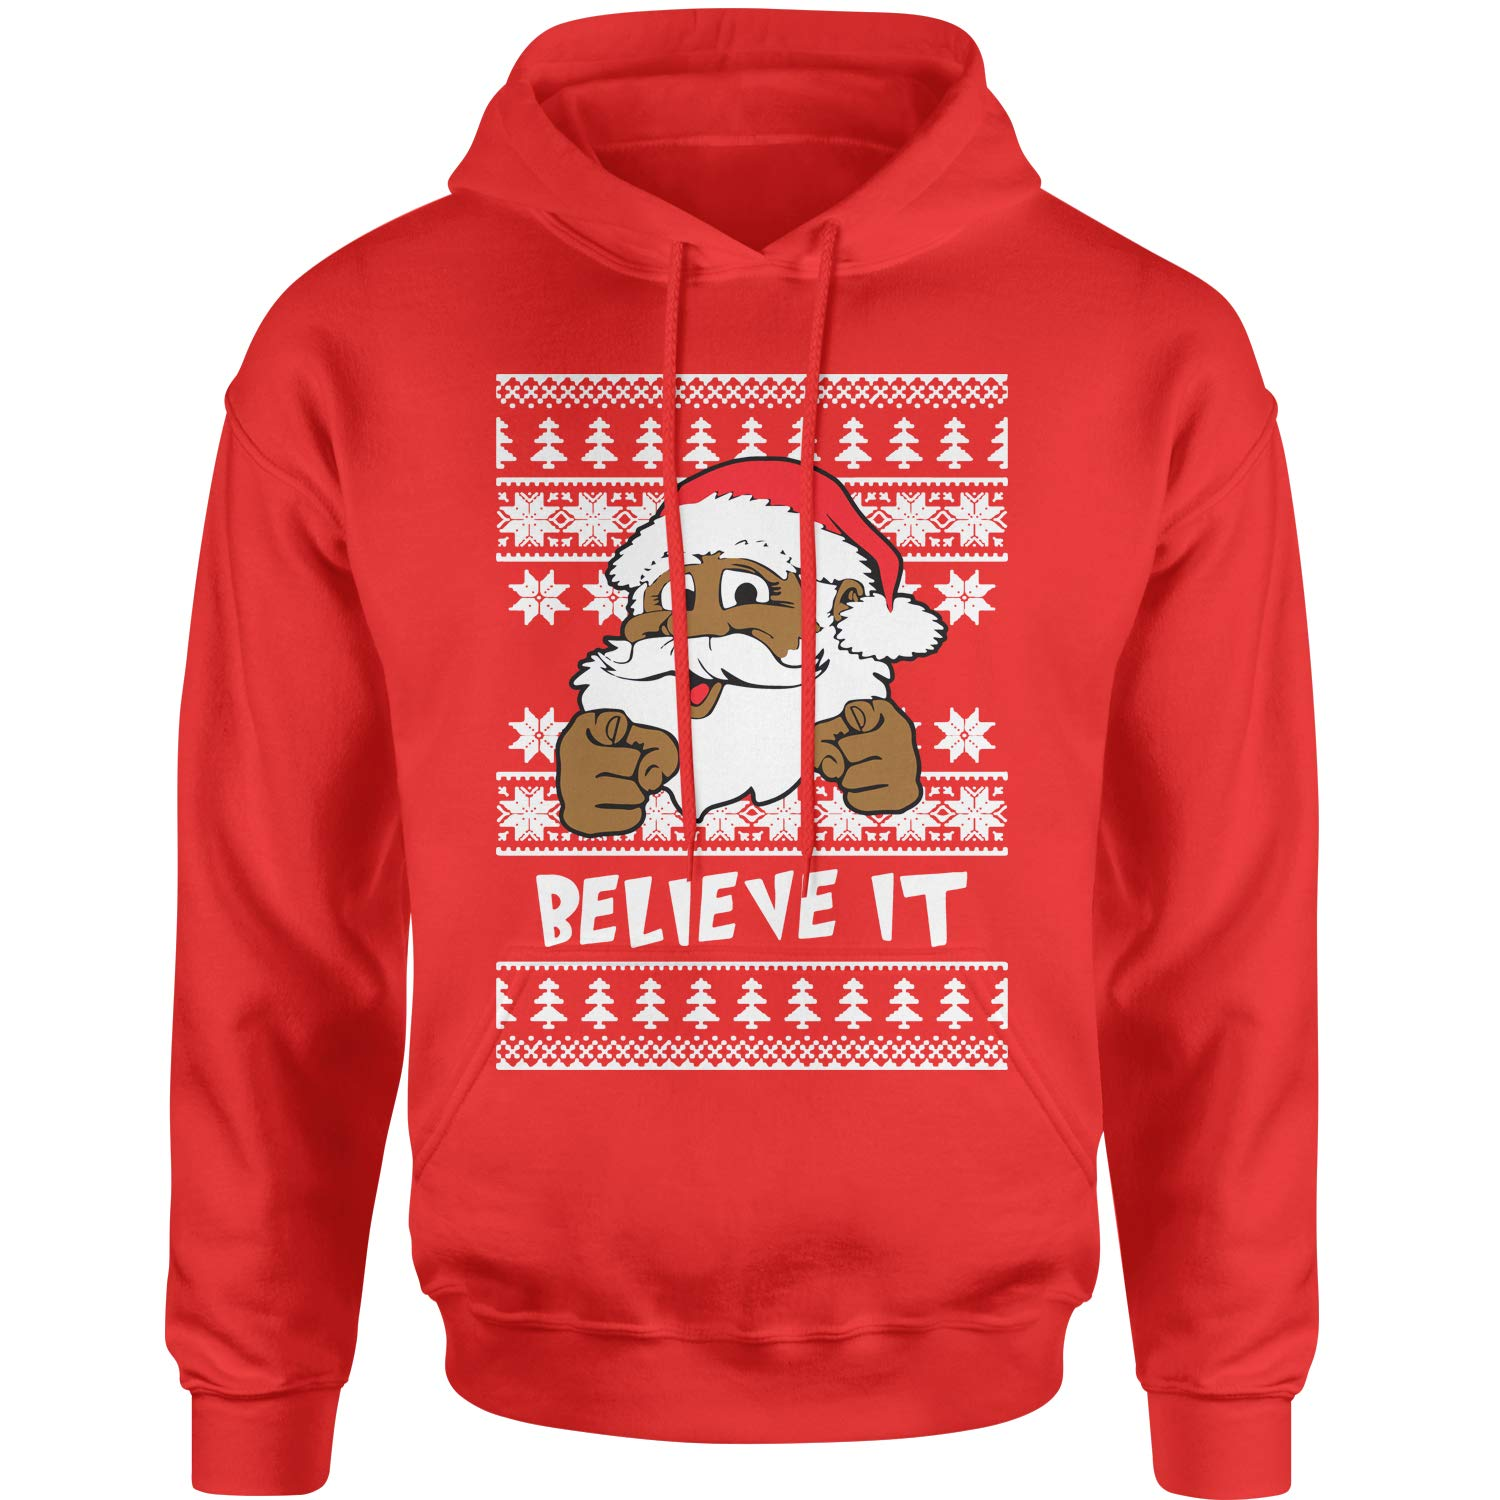 Motivated Culture Believe It Black Santa Clause Ugly Christmas Adult Unisex Hoodie